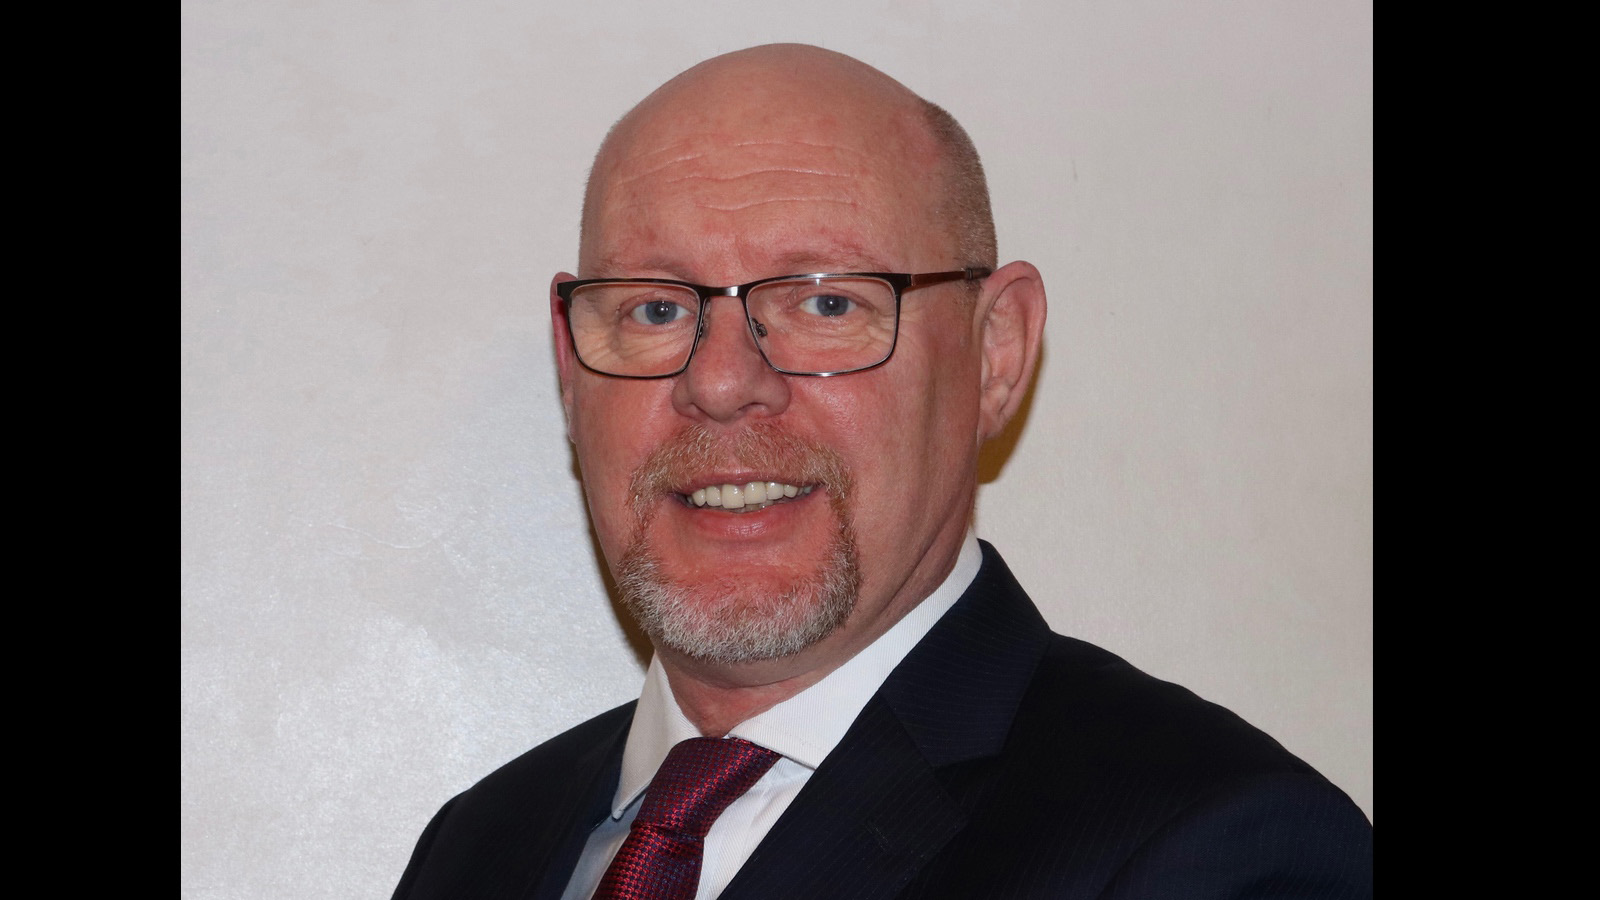 CDS opens Manchester office and appoints new regional director for the North